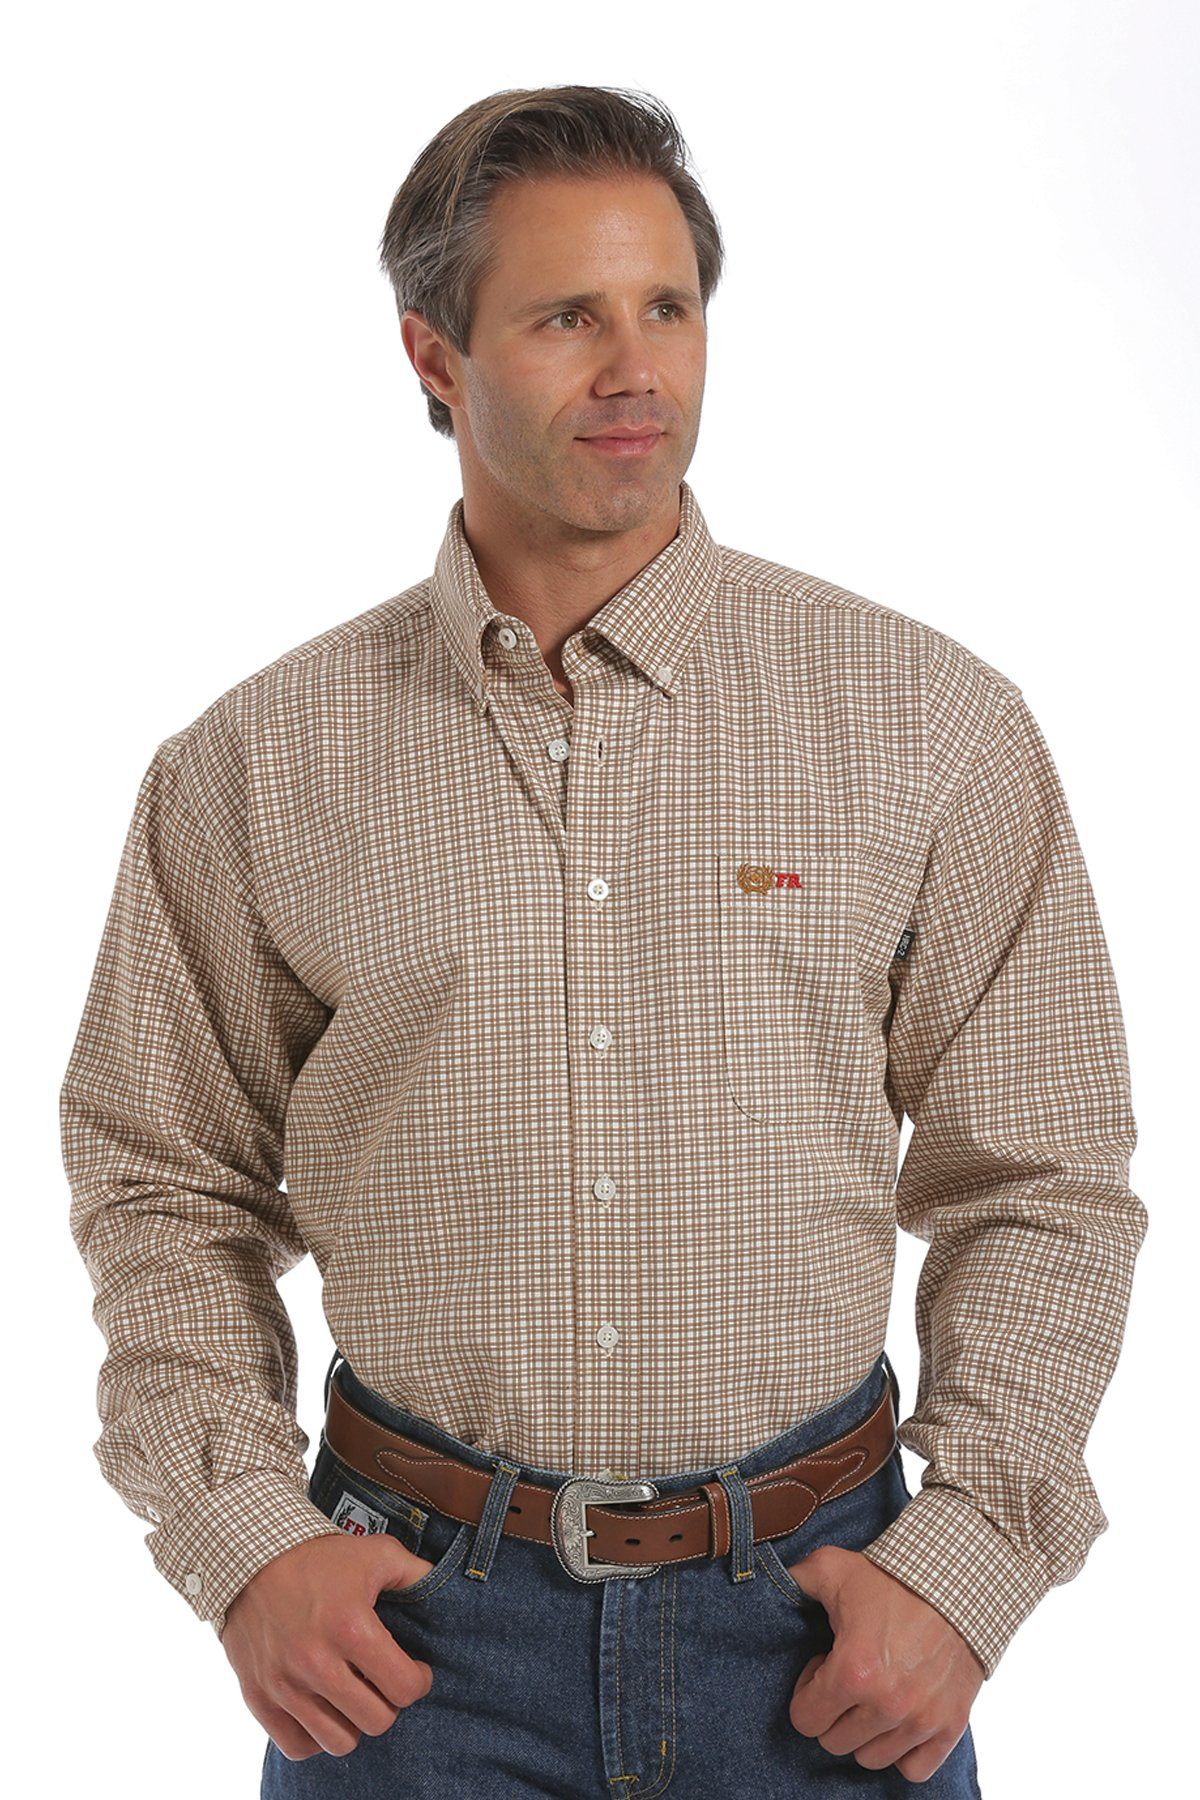 CINCH FR WRX BROWN PLAID WORK SHIRT-Cinch WRX